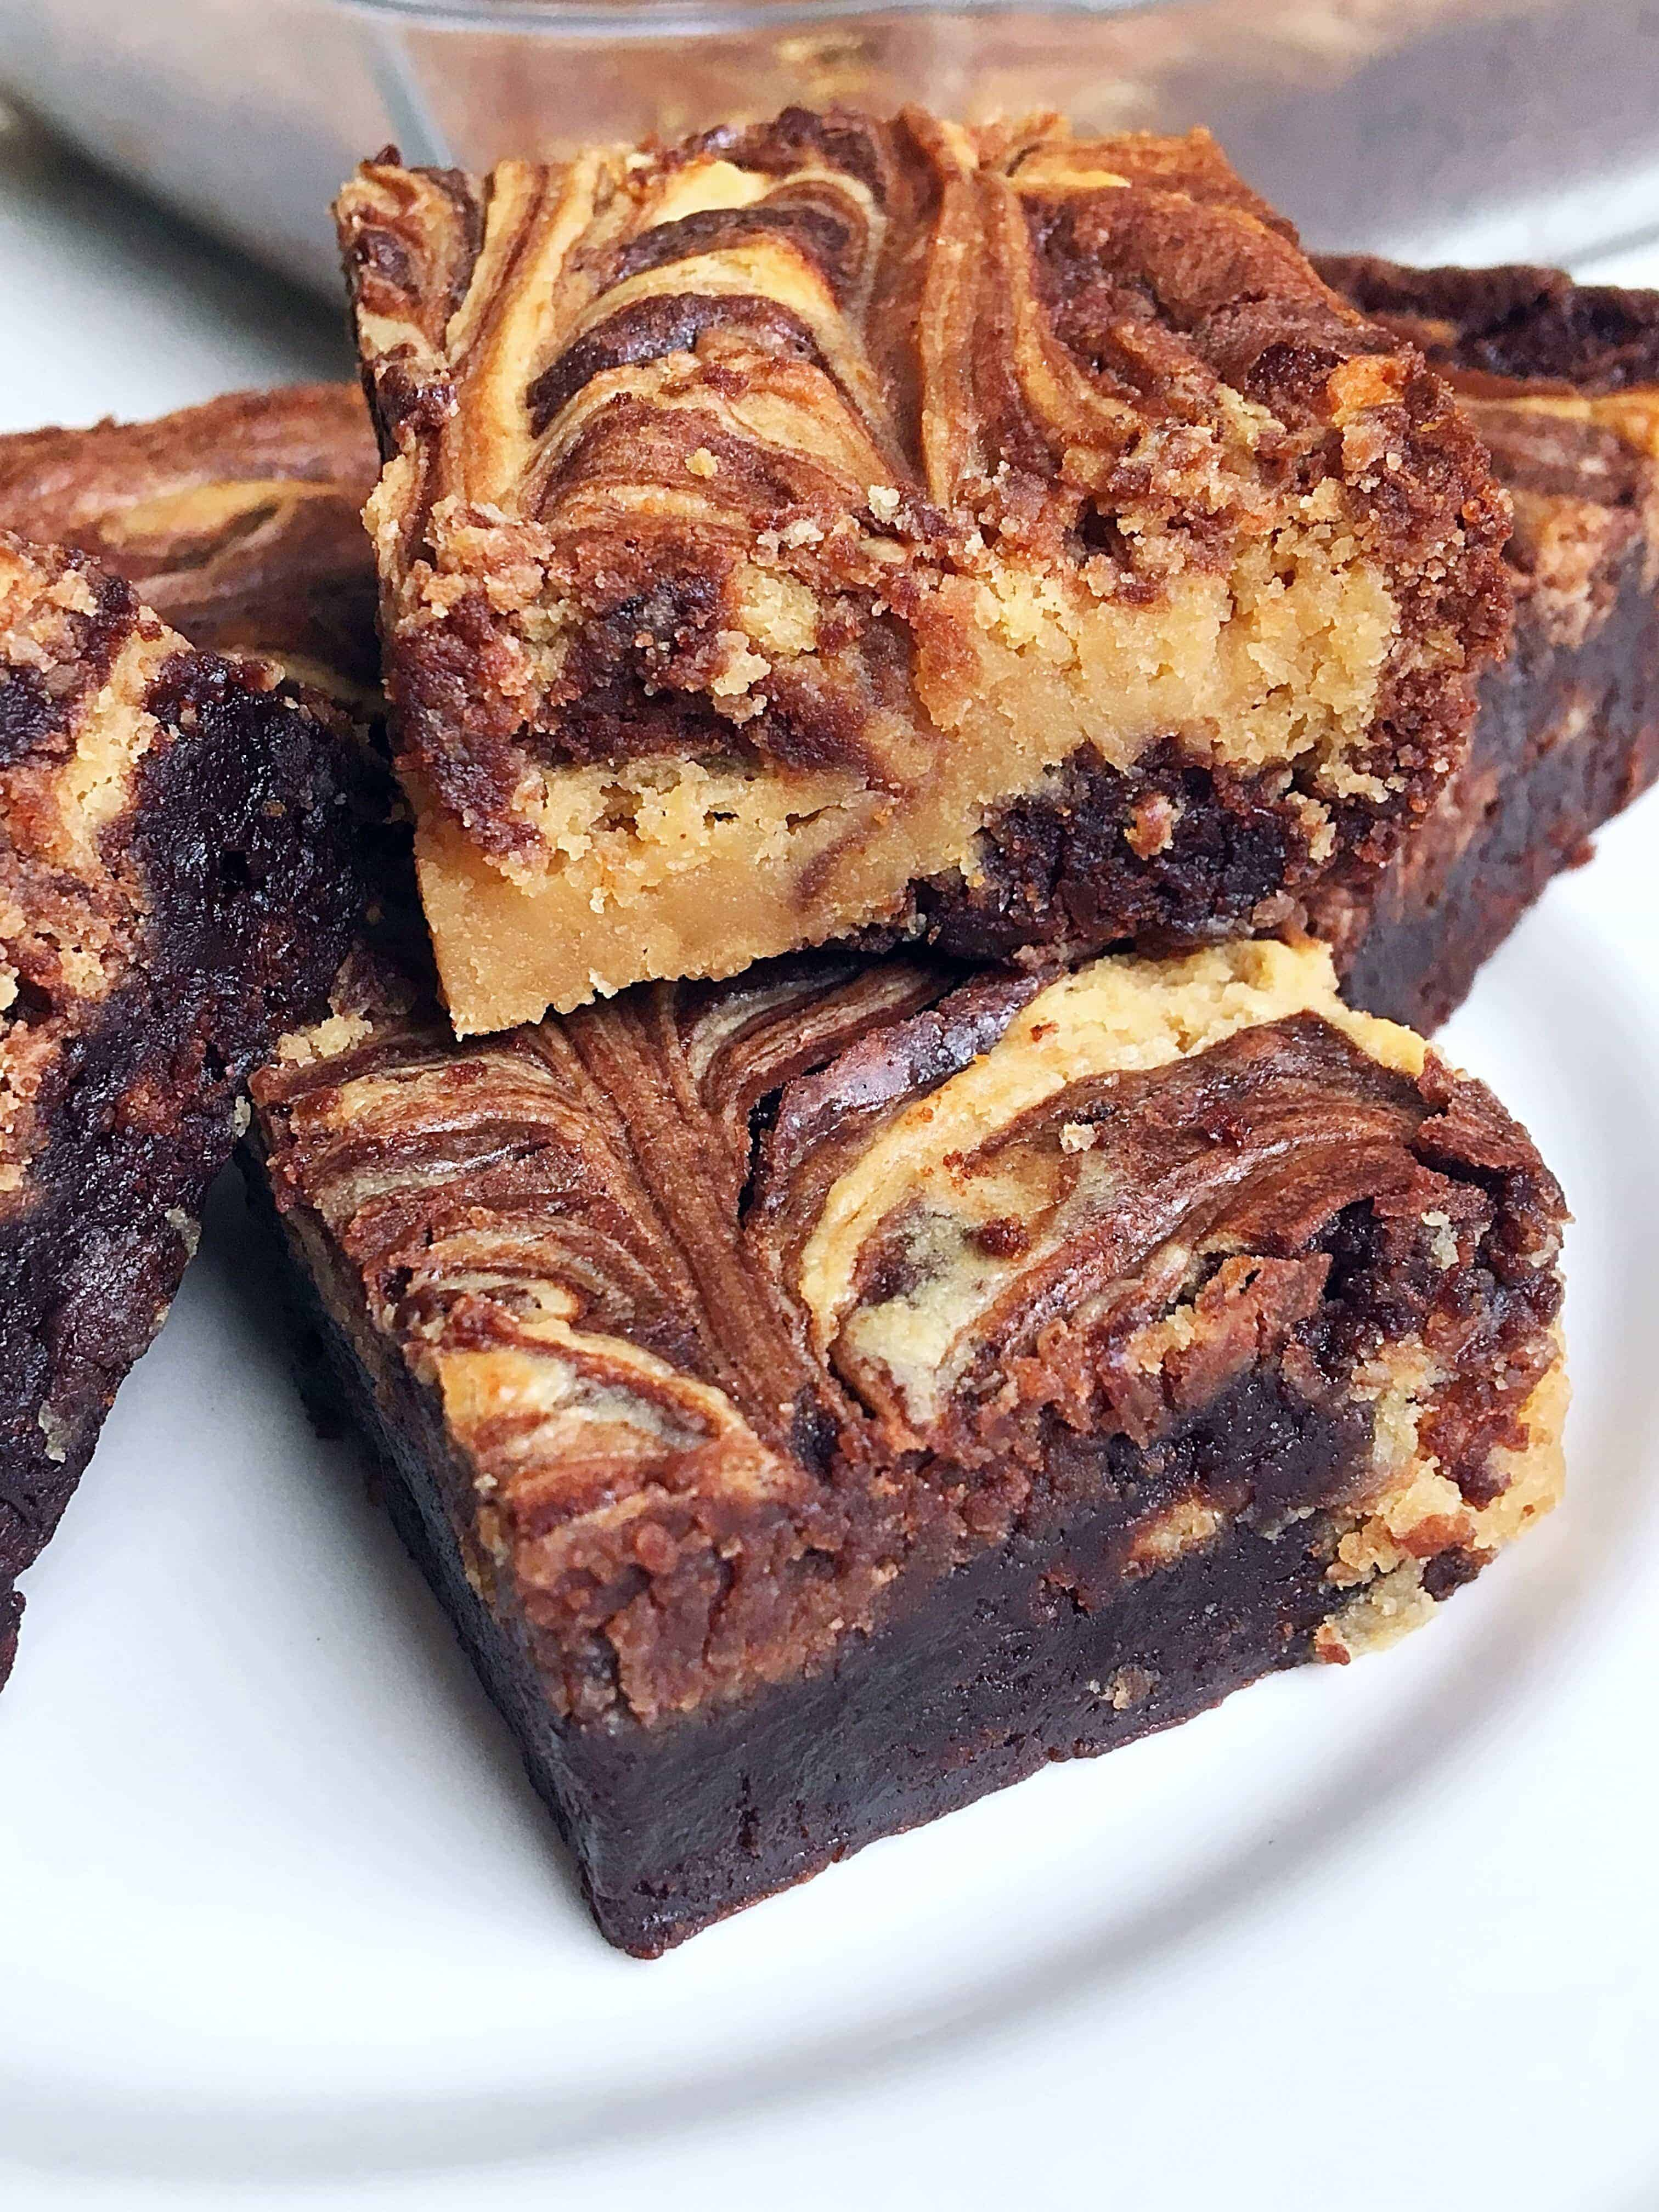 Say goodbye to boring brownies and hello to the most delicious brownies you've ever eaten! Featuring a simple fudge brownie box mix, swirls of decadent peanut butter and sweetened cream cheese mixture, these easy and delicious Peanut Butter Cheesecake Swirl Brownies will quickly become your new favorite dessert recipe to make!